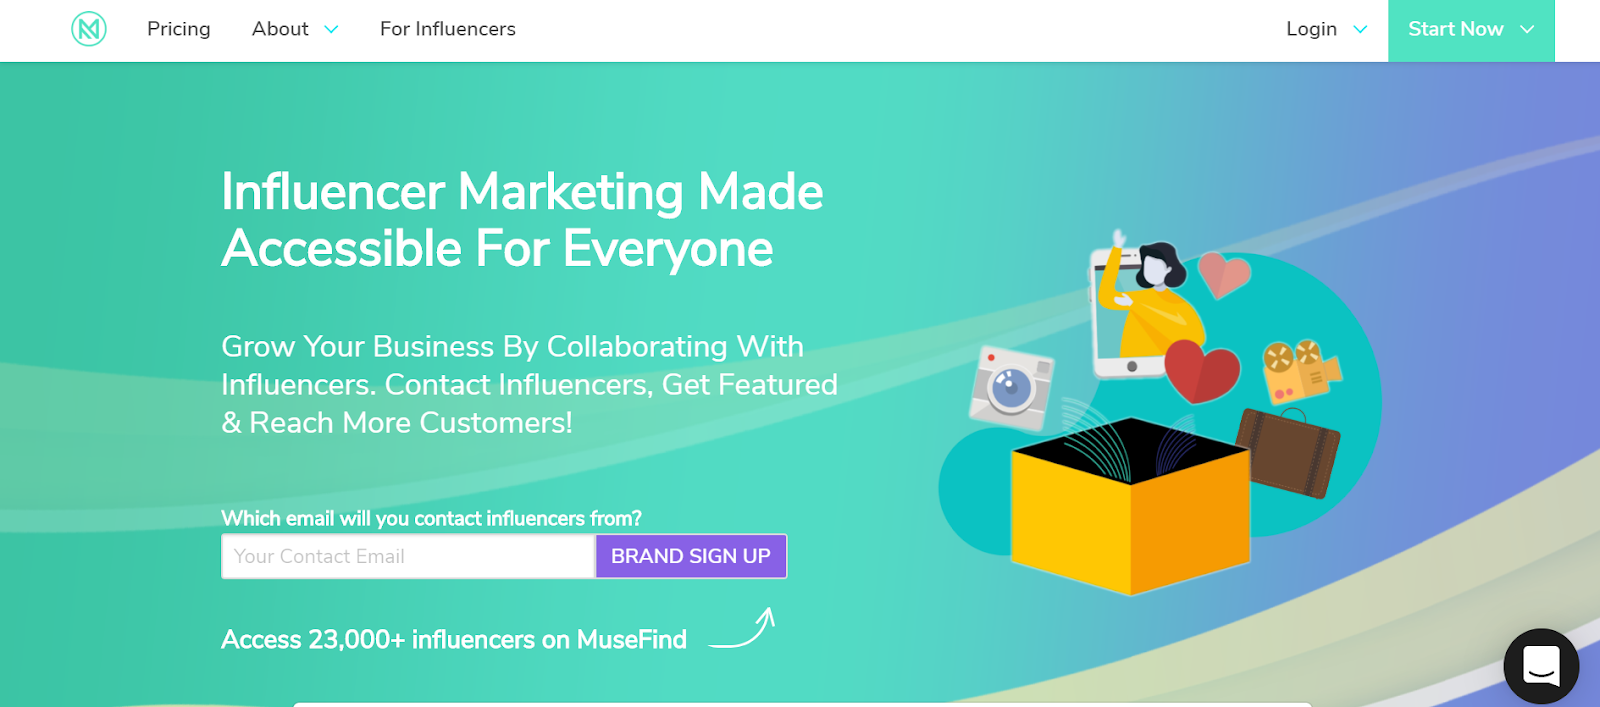 MuseFind Influencer Marketing Platform